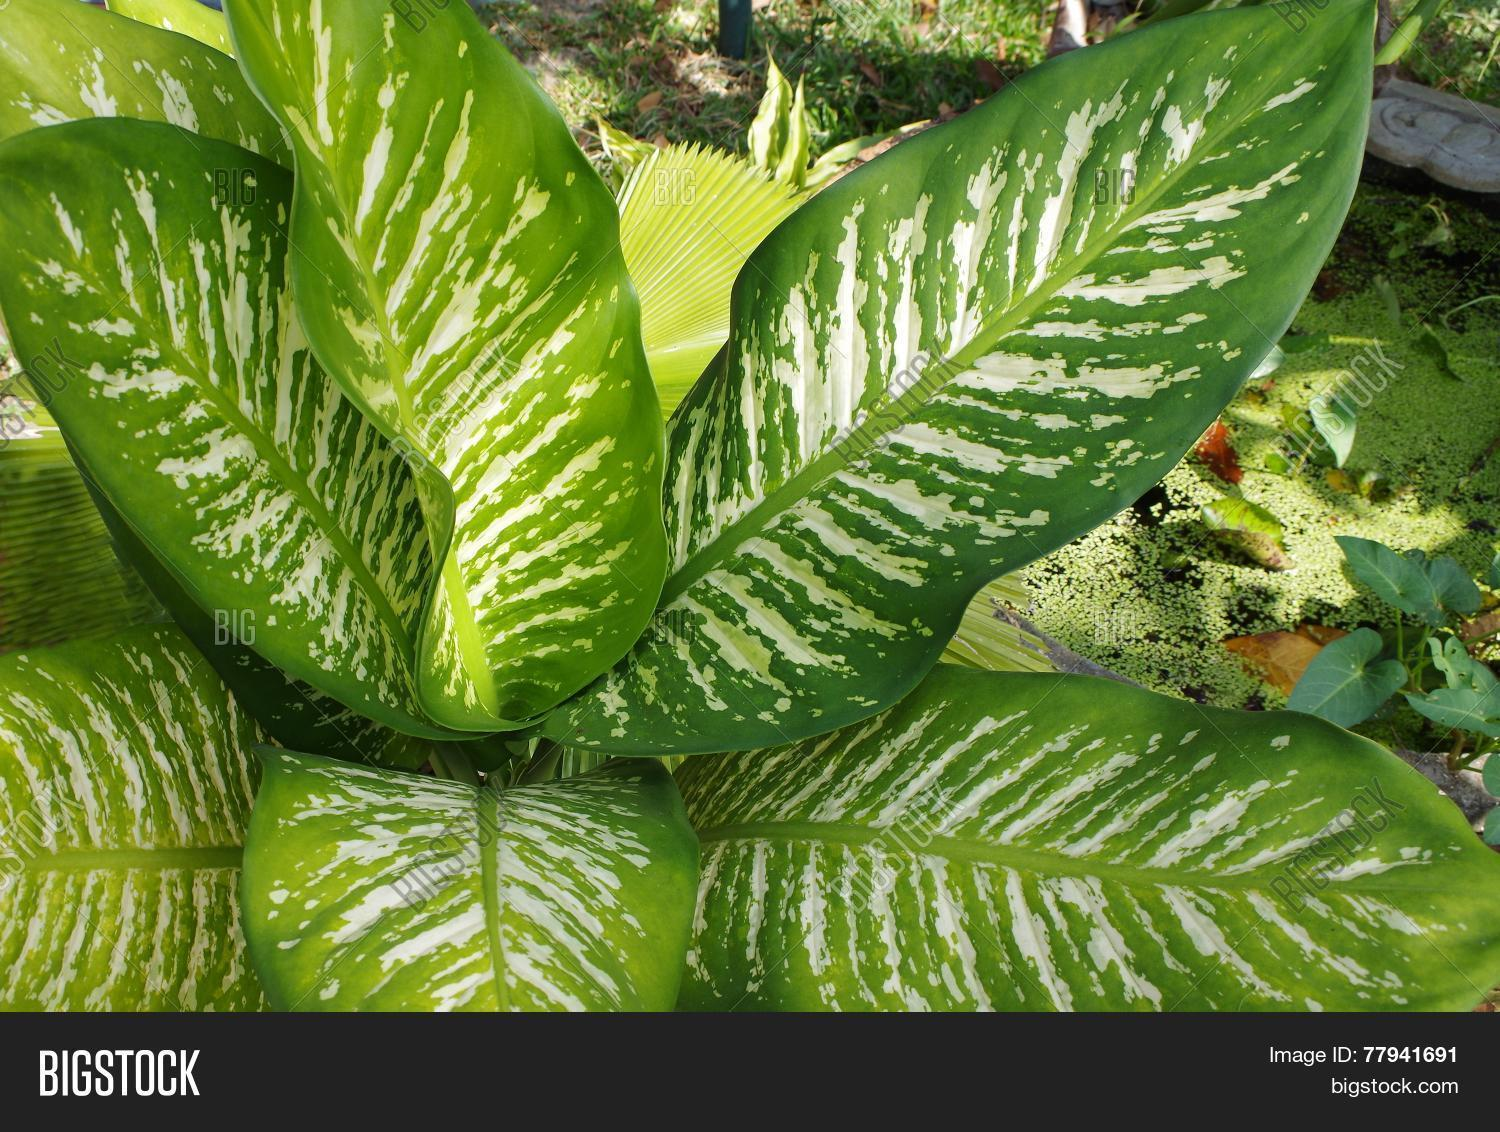 Large Leaf Houseplant Variegated Large Leaf Plant Close Image And Photo Bigstock